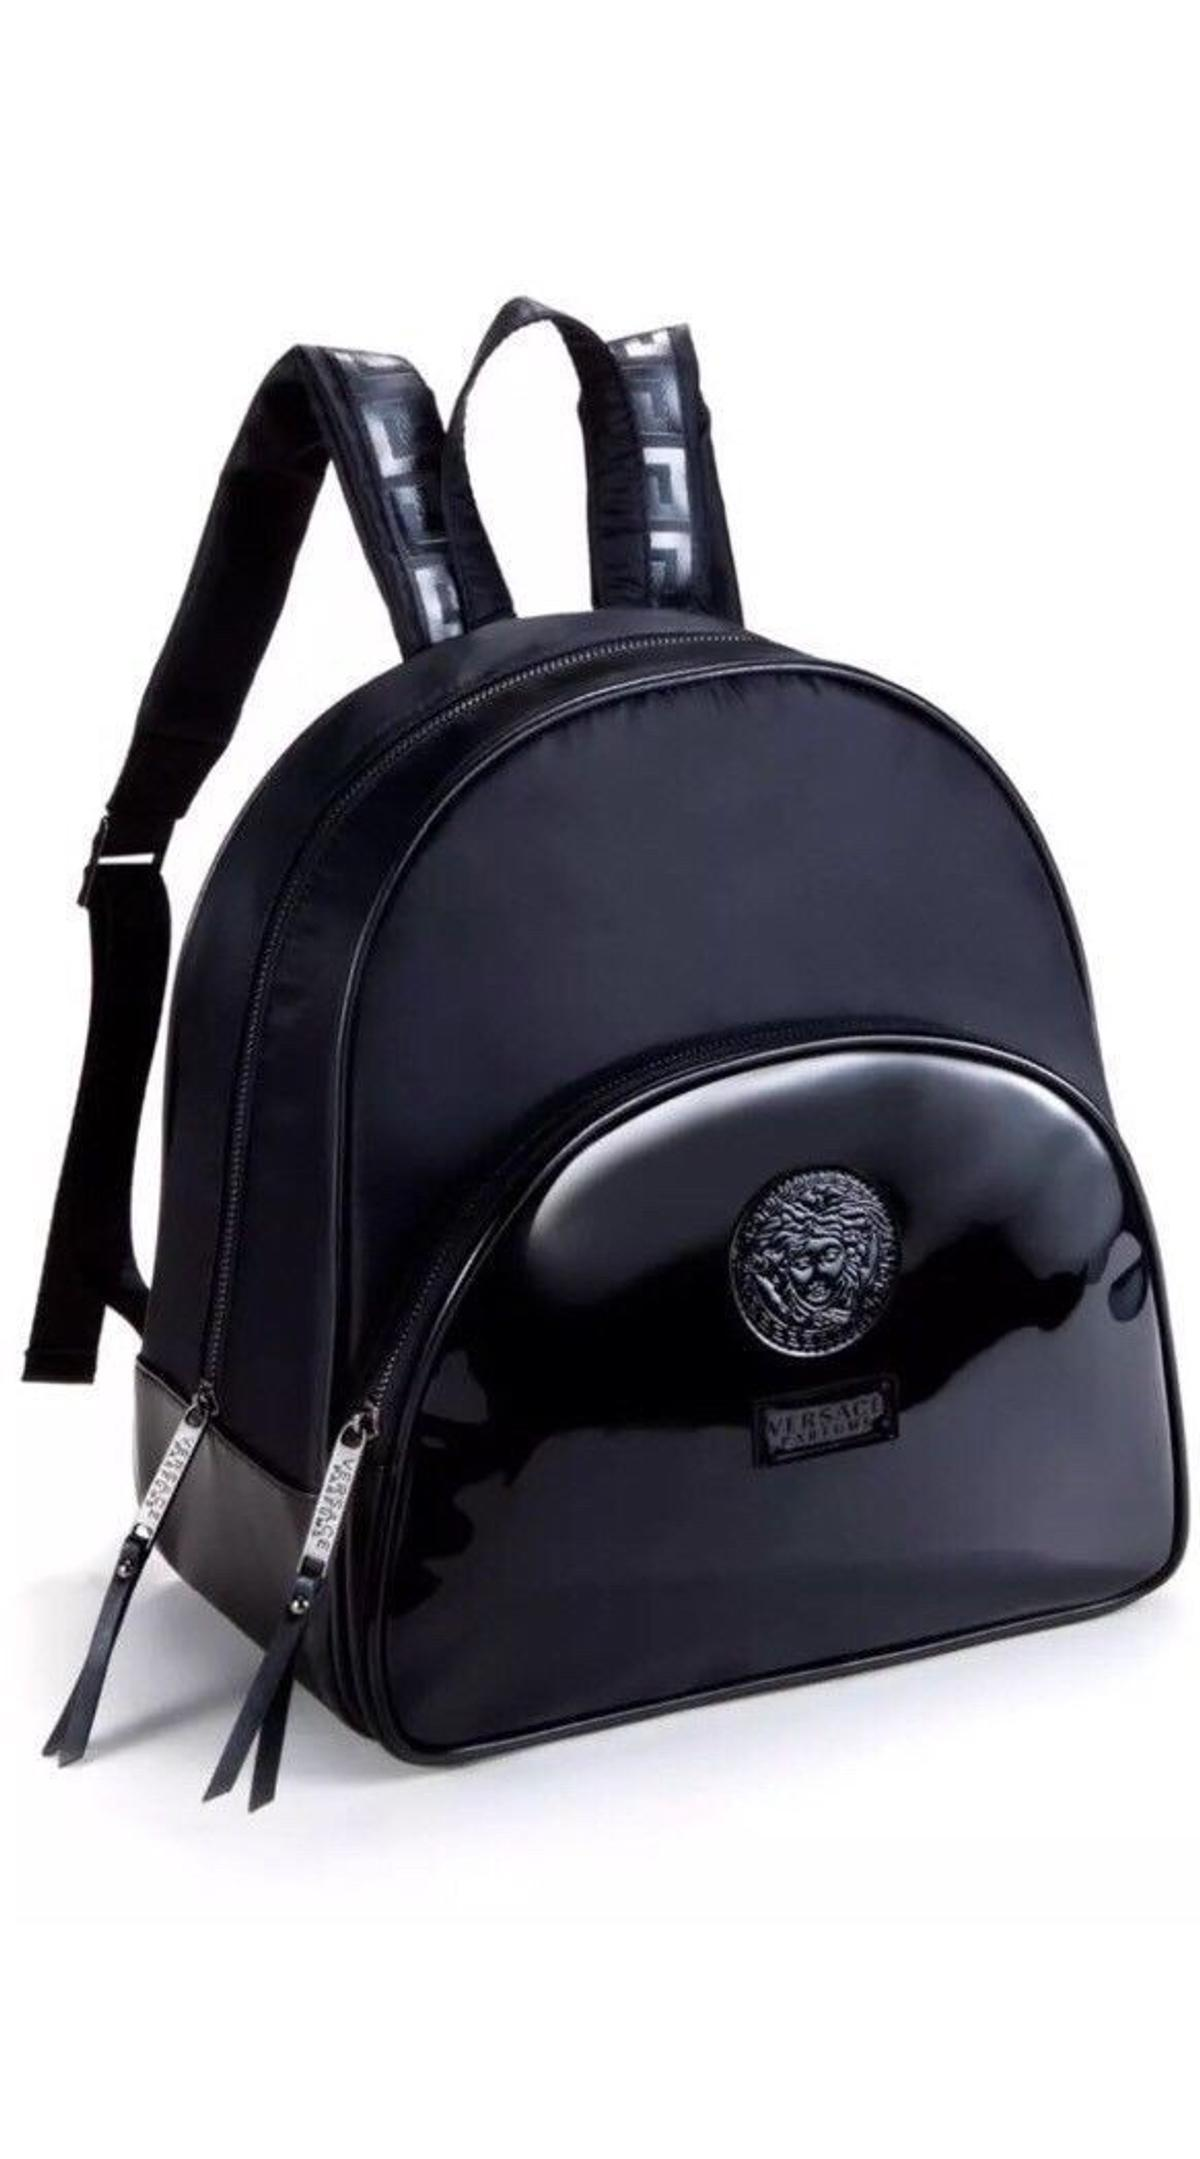 6b4992a76a Genuine Versace Parfums Black Backpack in LS12 Leeds for £30.00 for ...